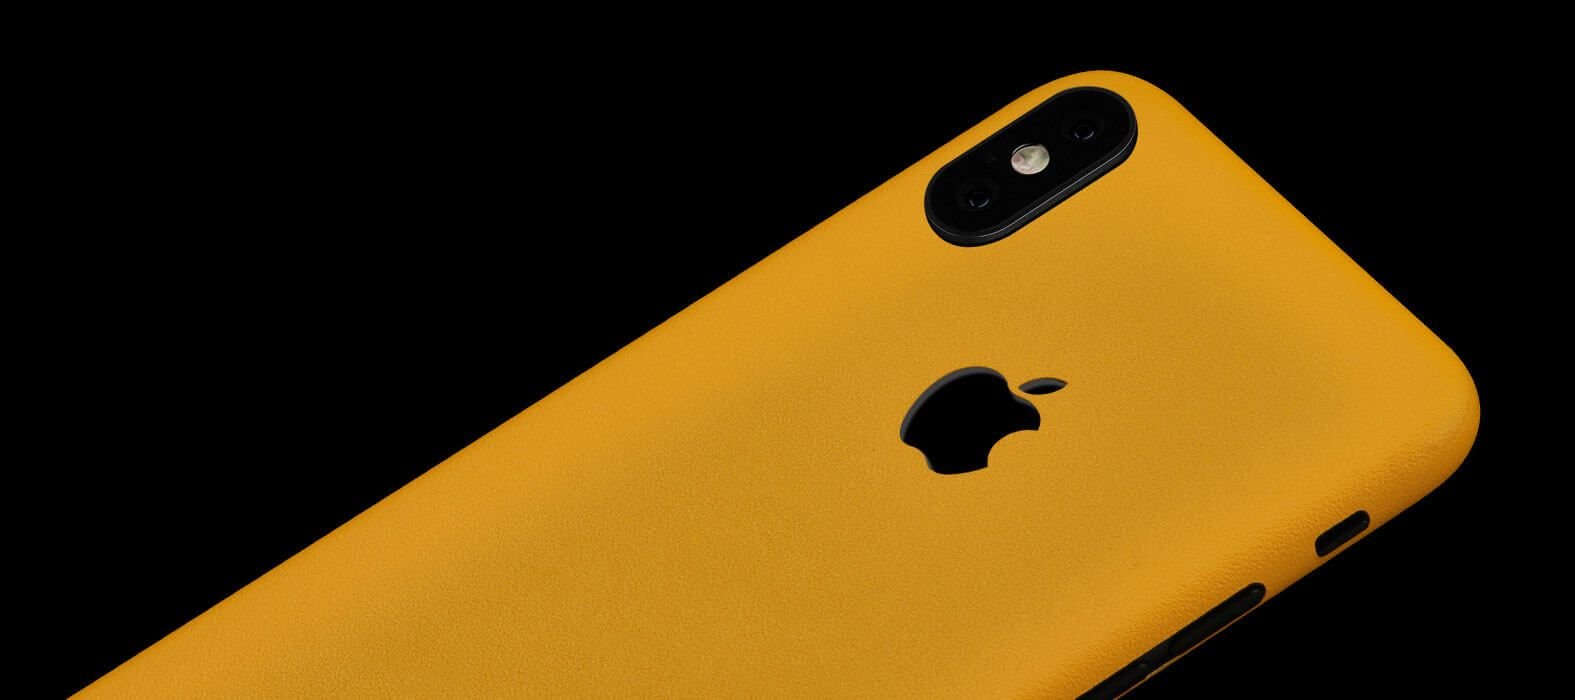 iPhone X Skins, Wraps & decals - Sandstone Yellow